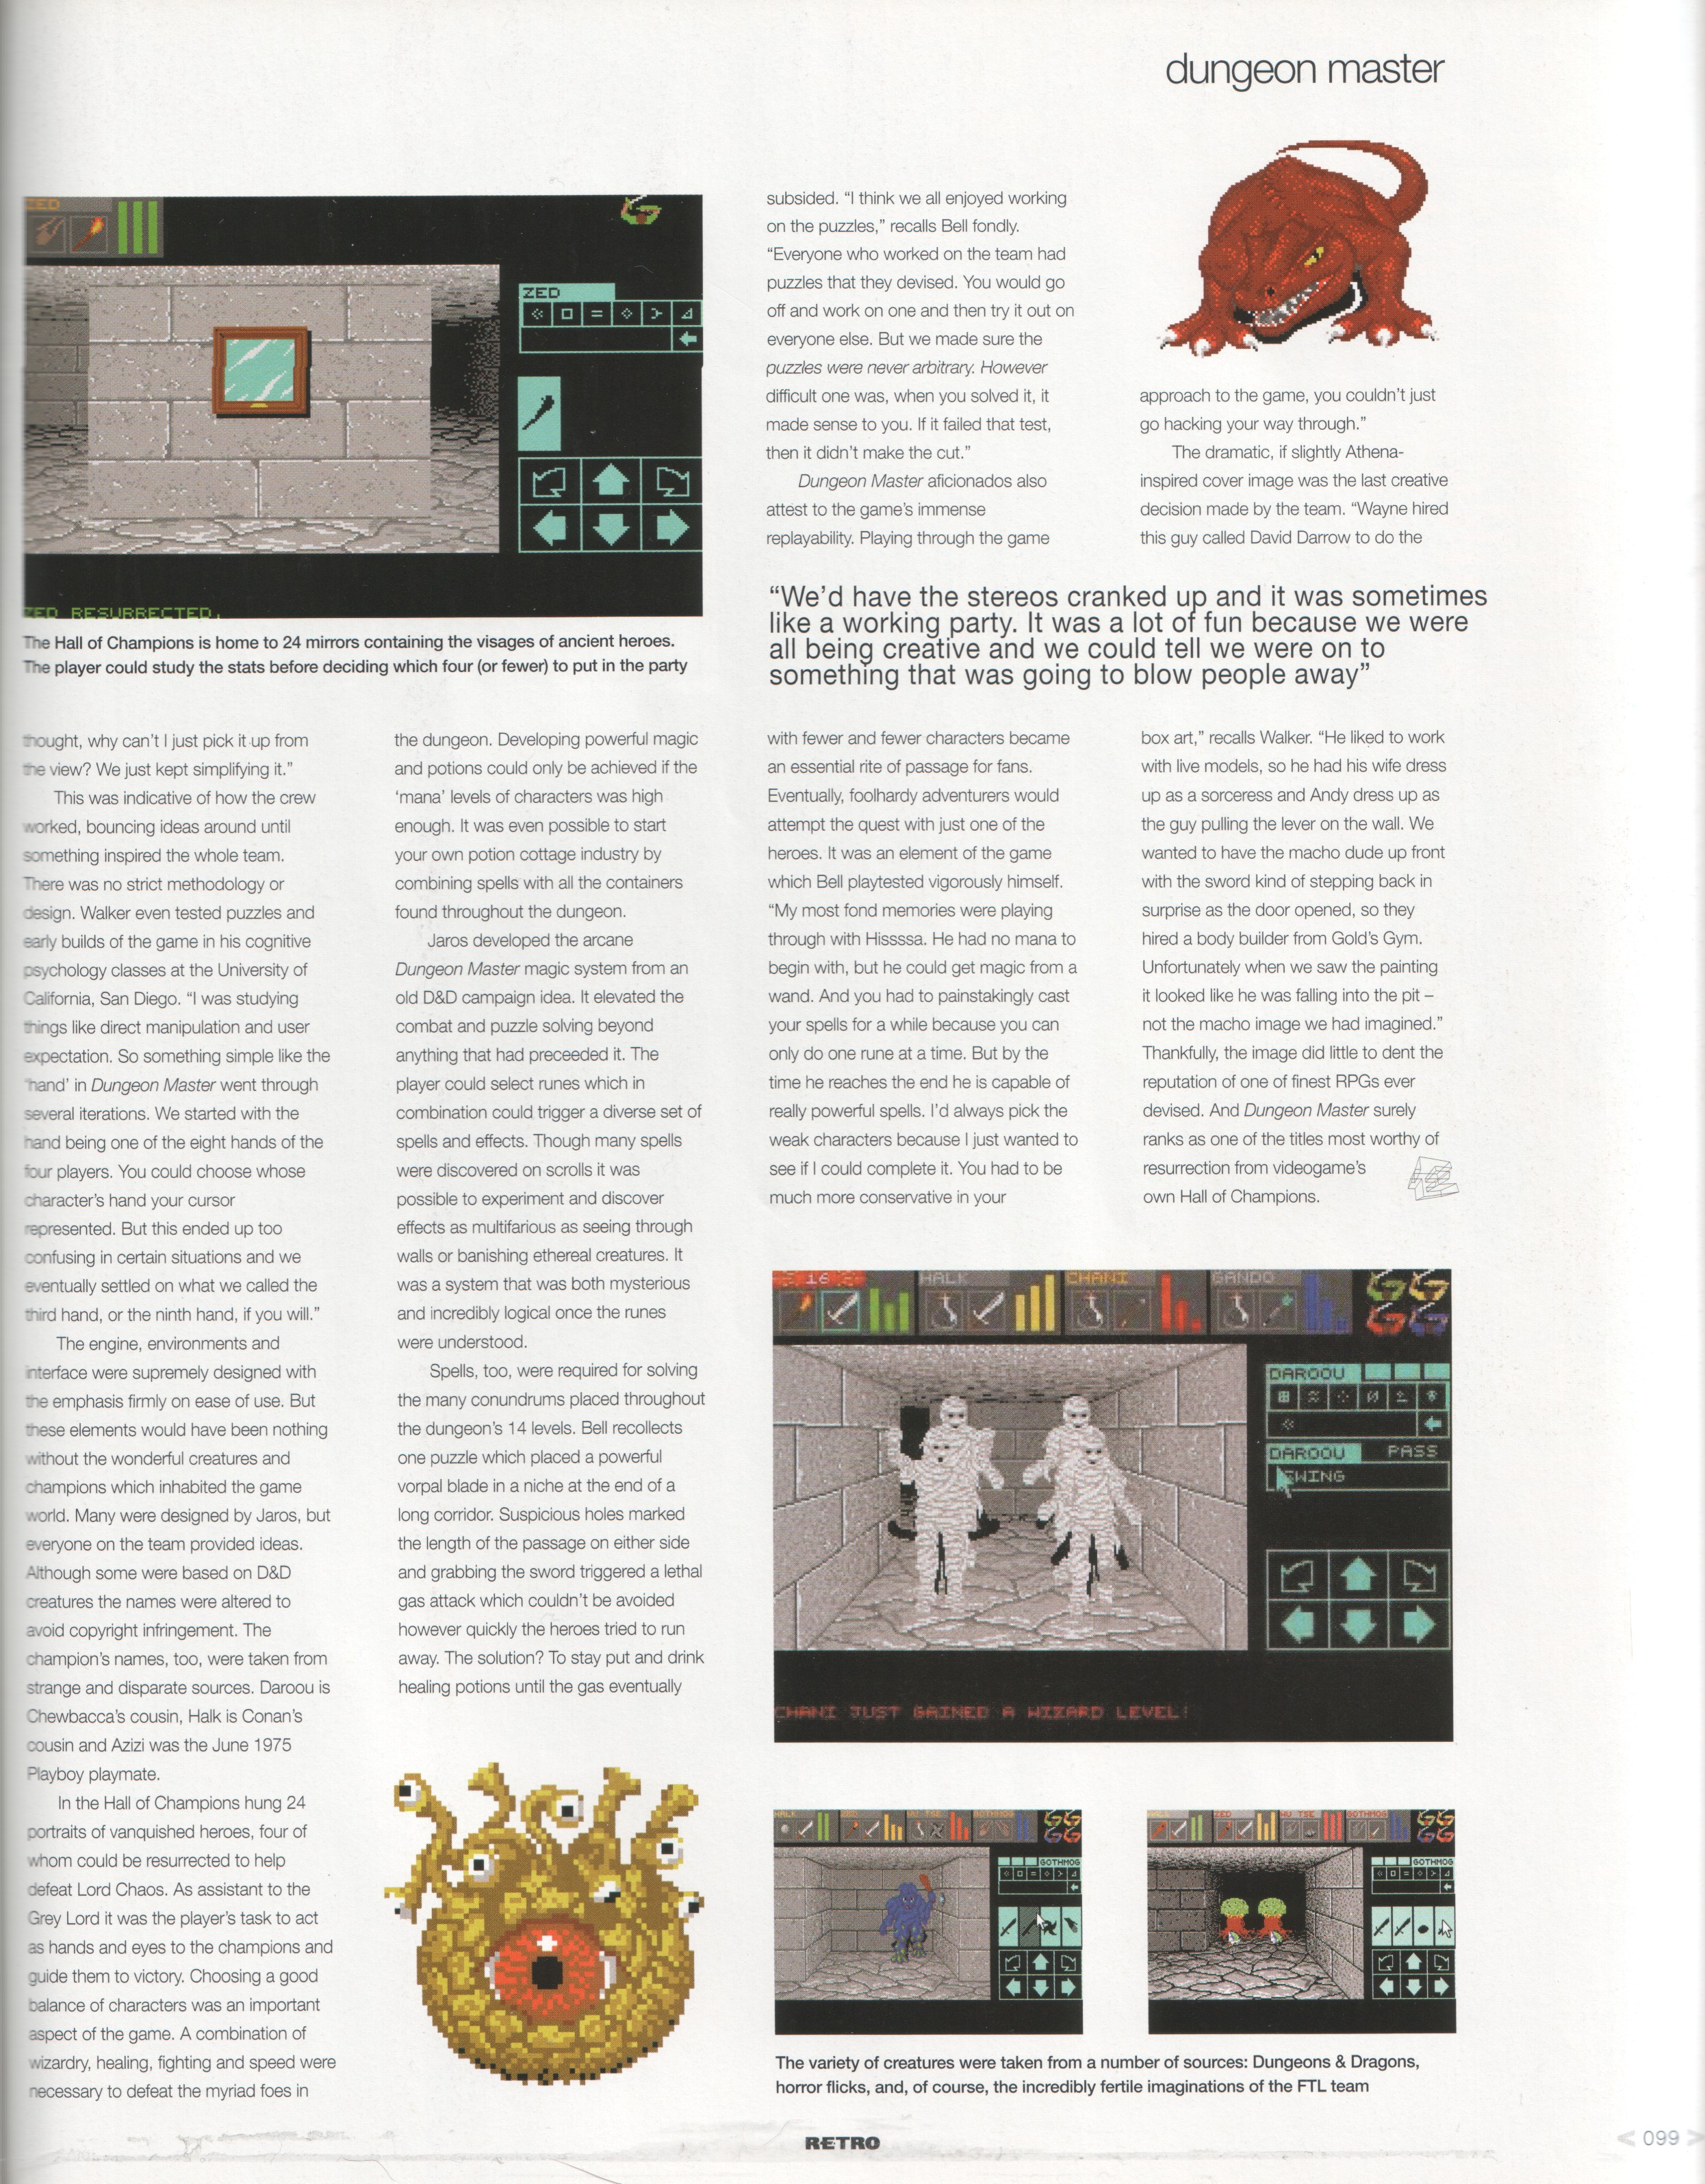 Dungeon Master Article published in British magazine 'Edge Presents Retro The Making Of Special', February 2003, Page 99